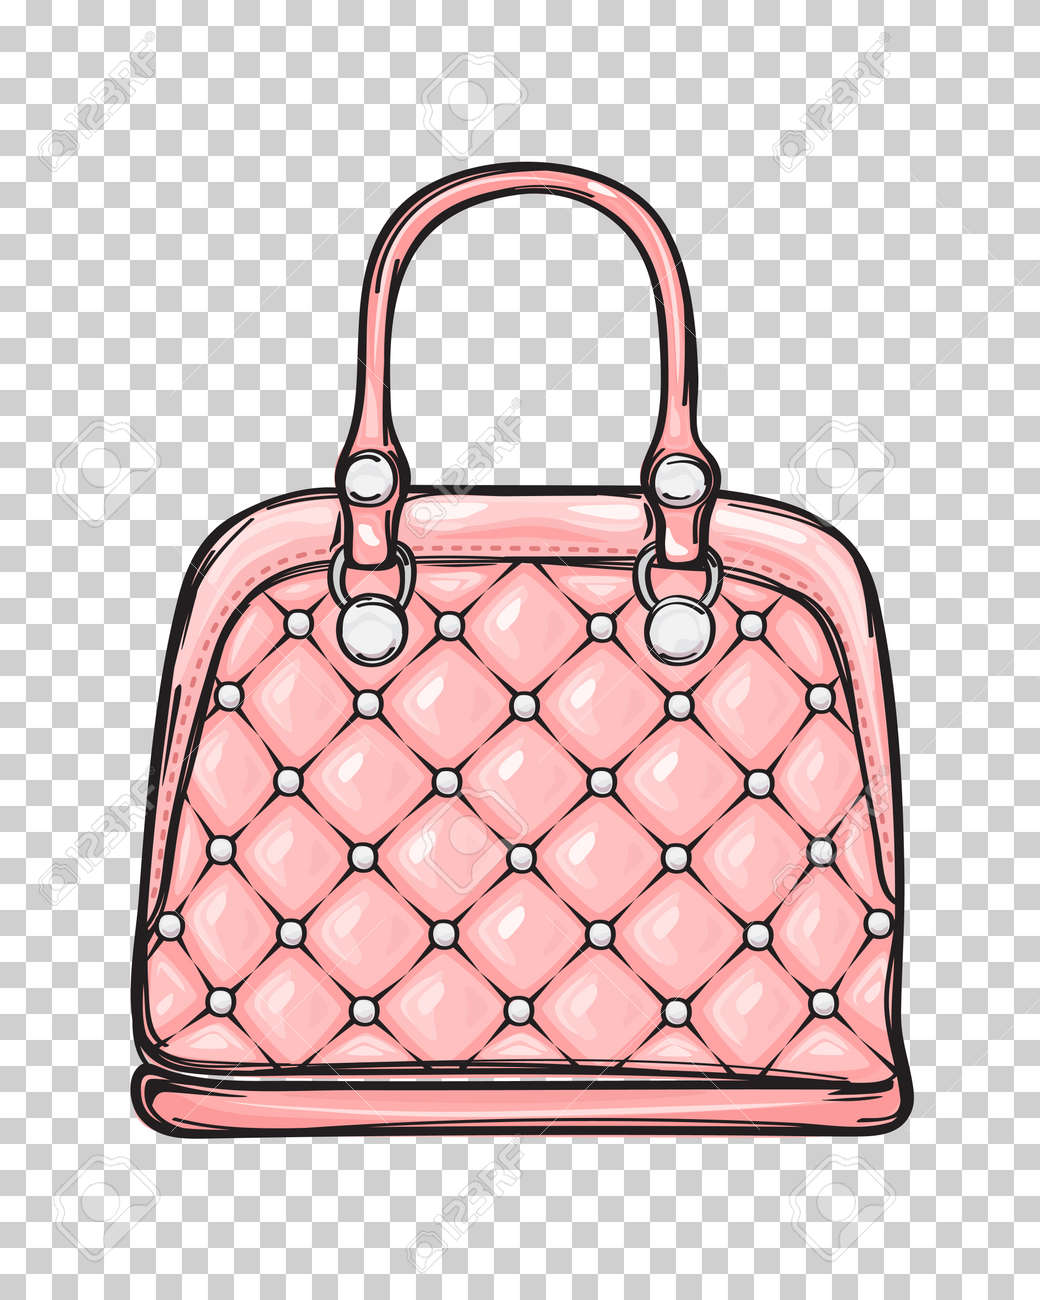 Trendy Leather Pink Bag Isolated Illustration - 84986111